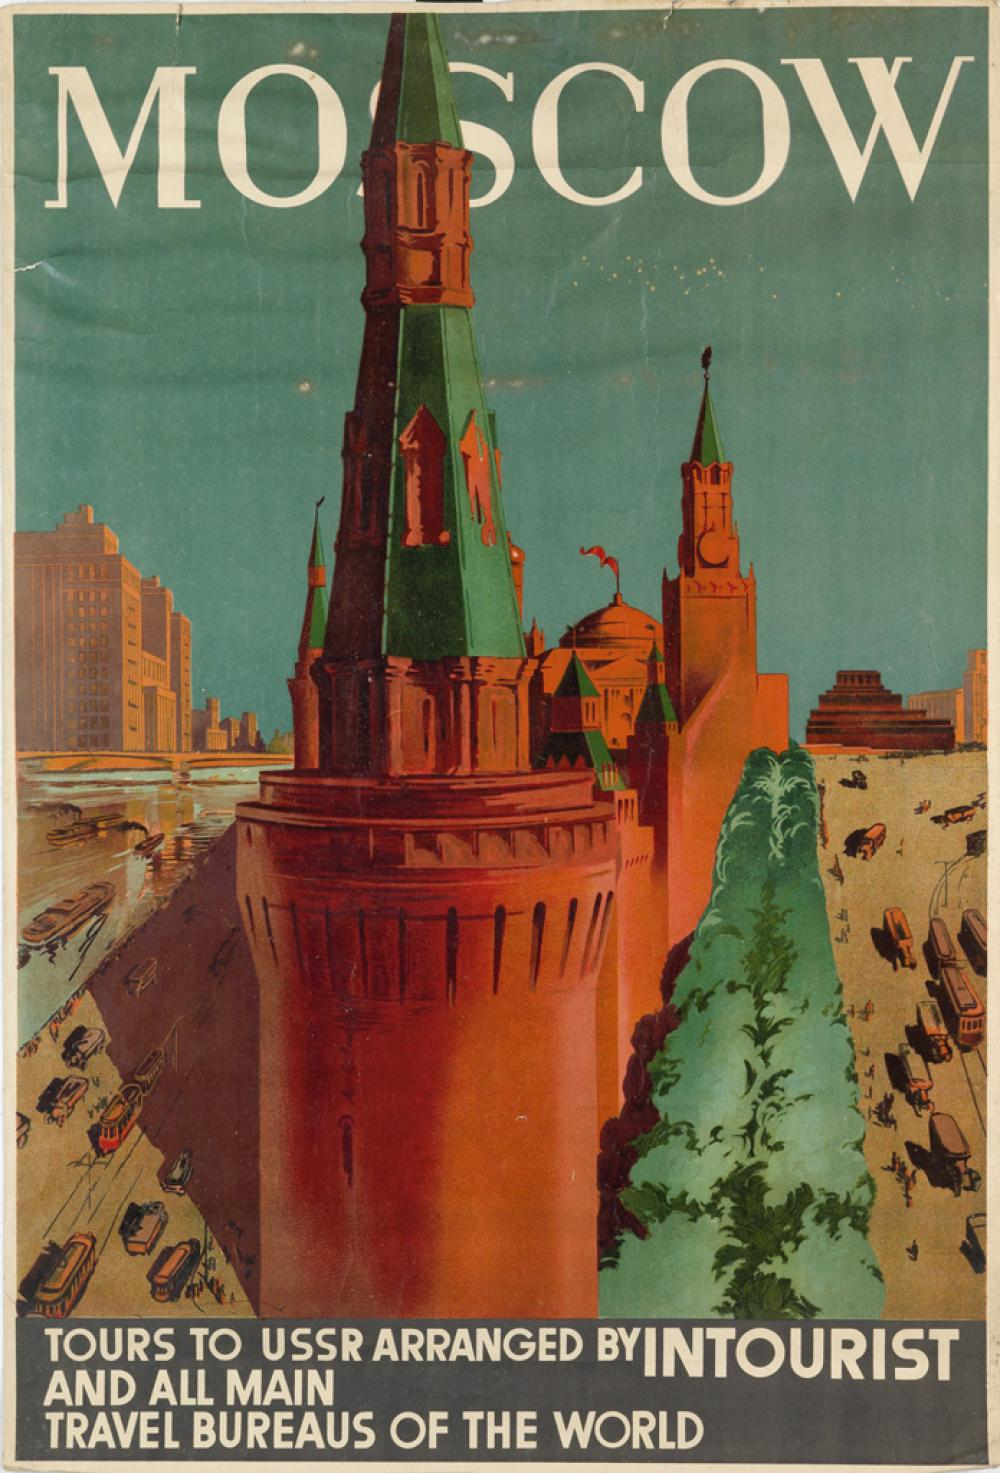 DESIGNER UNKNOWN. MOSCOW. Circa 1930s. 40x27 inches, 101x69 cm.